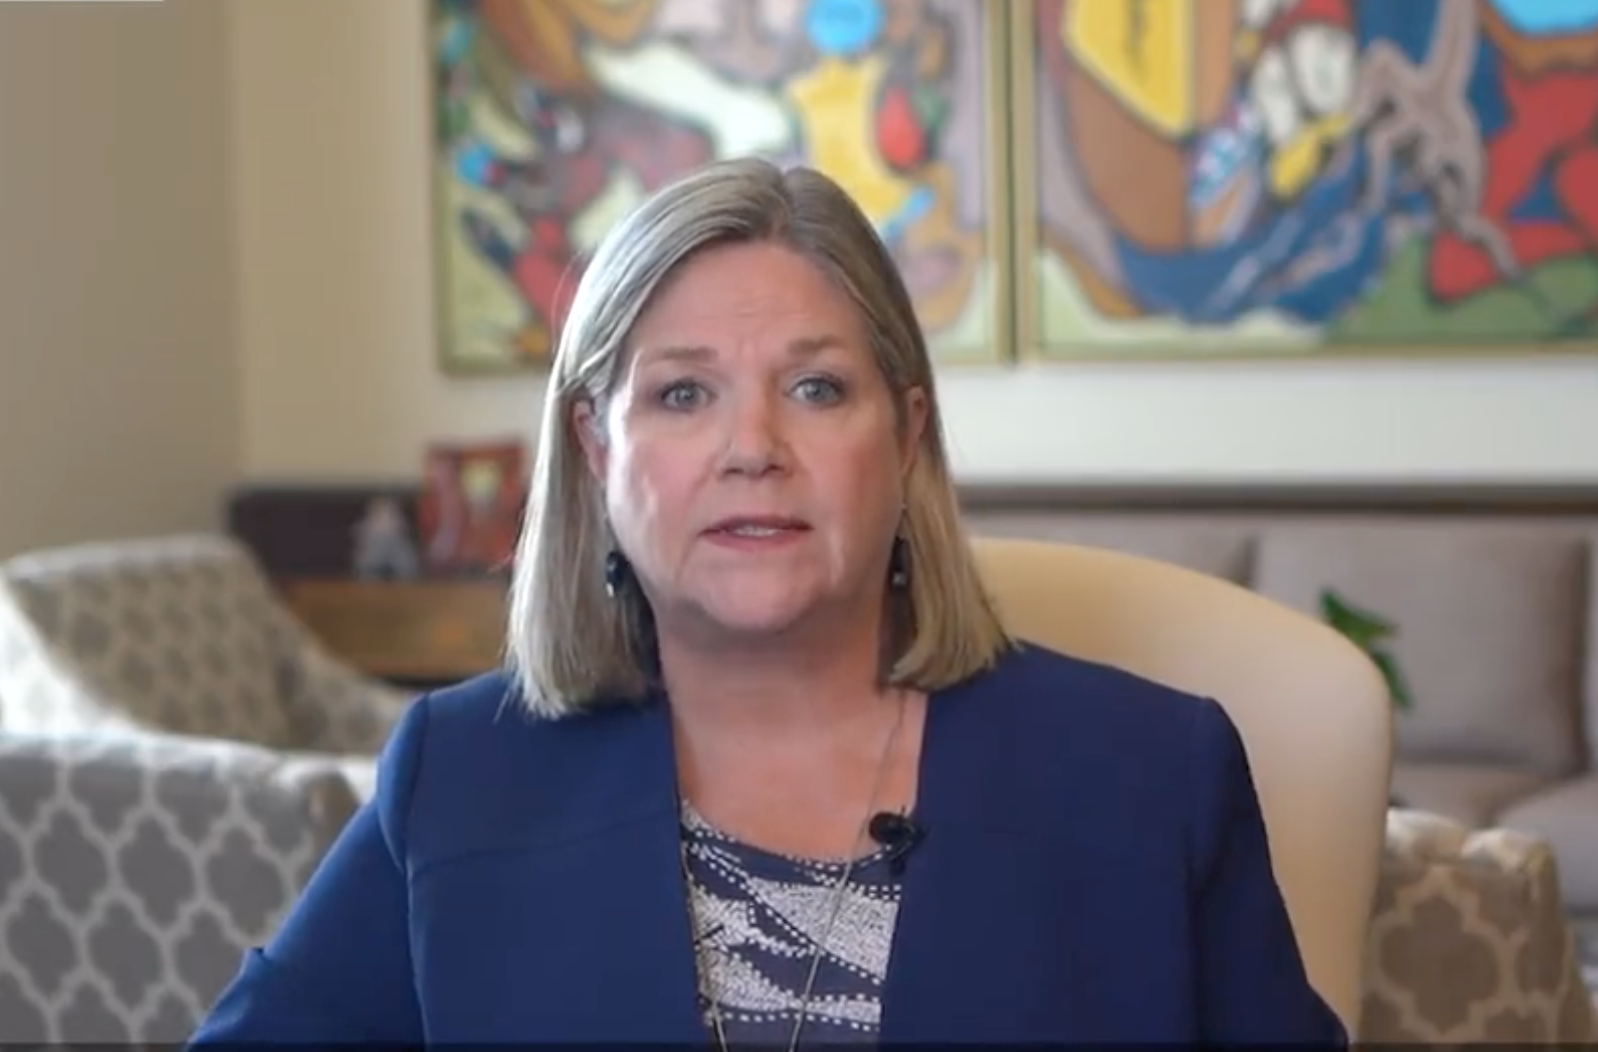 Andrea Horwath provides few details on decision to walk back opposition to mandatory vaccinations